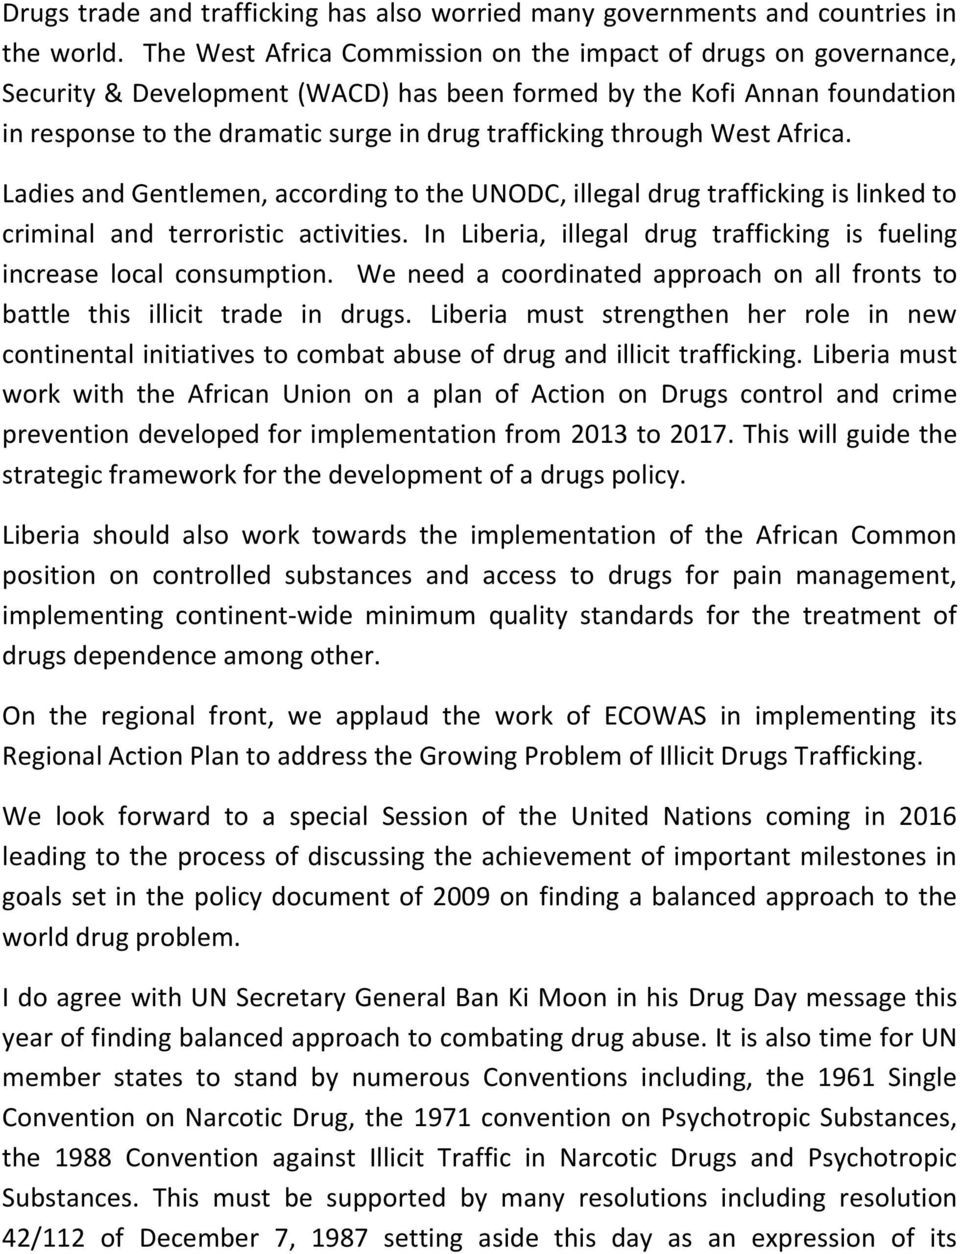 through West Africa. Ladies and Gentlemen, according to the UNODC, illegal drug trafficking is linked to criminal and terroristic activities.